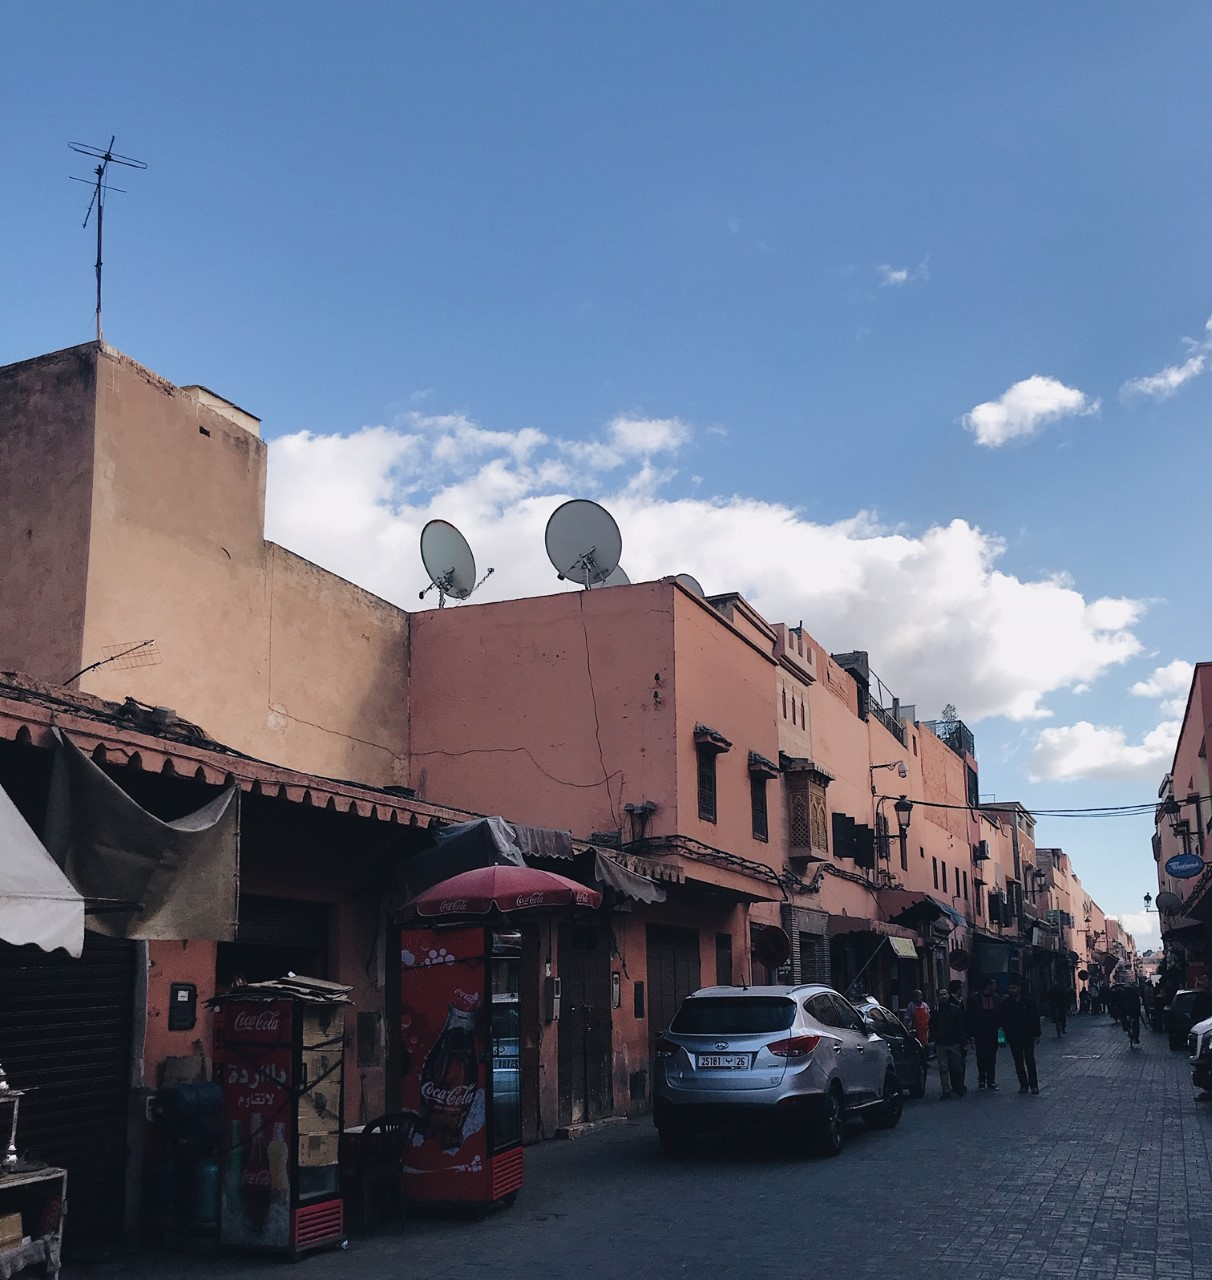 Marrakech travel: discover the amazing Marrakech attractions you can't afford to miss